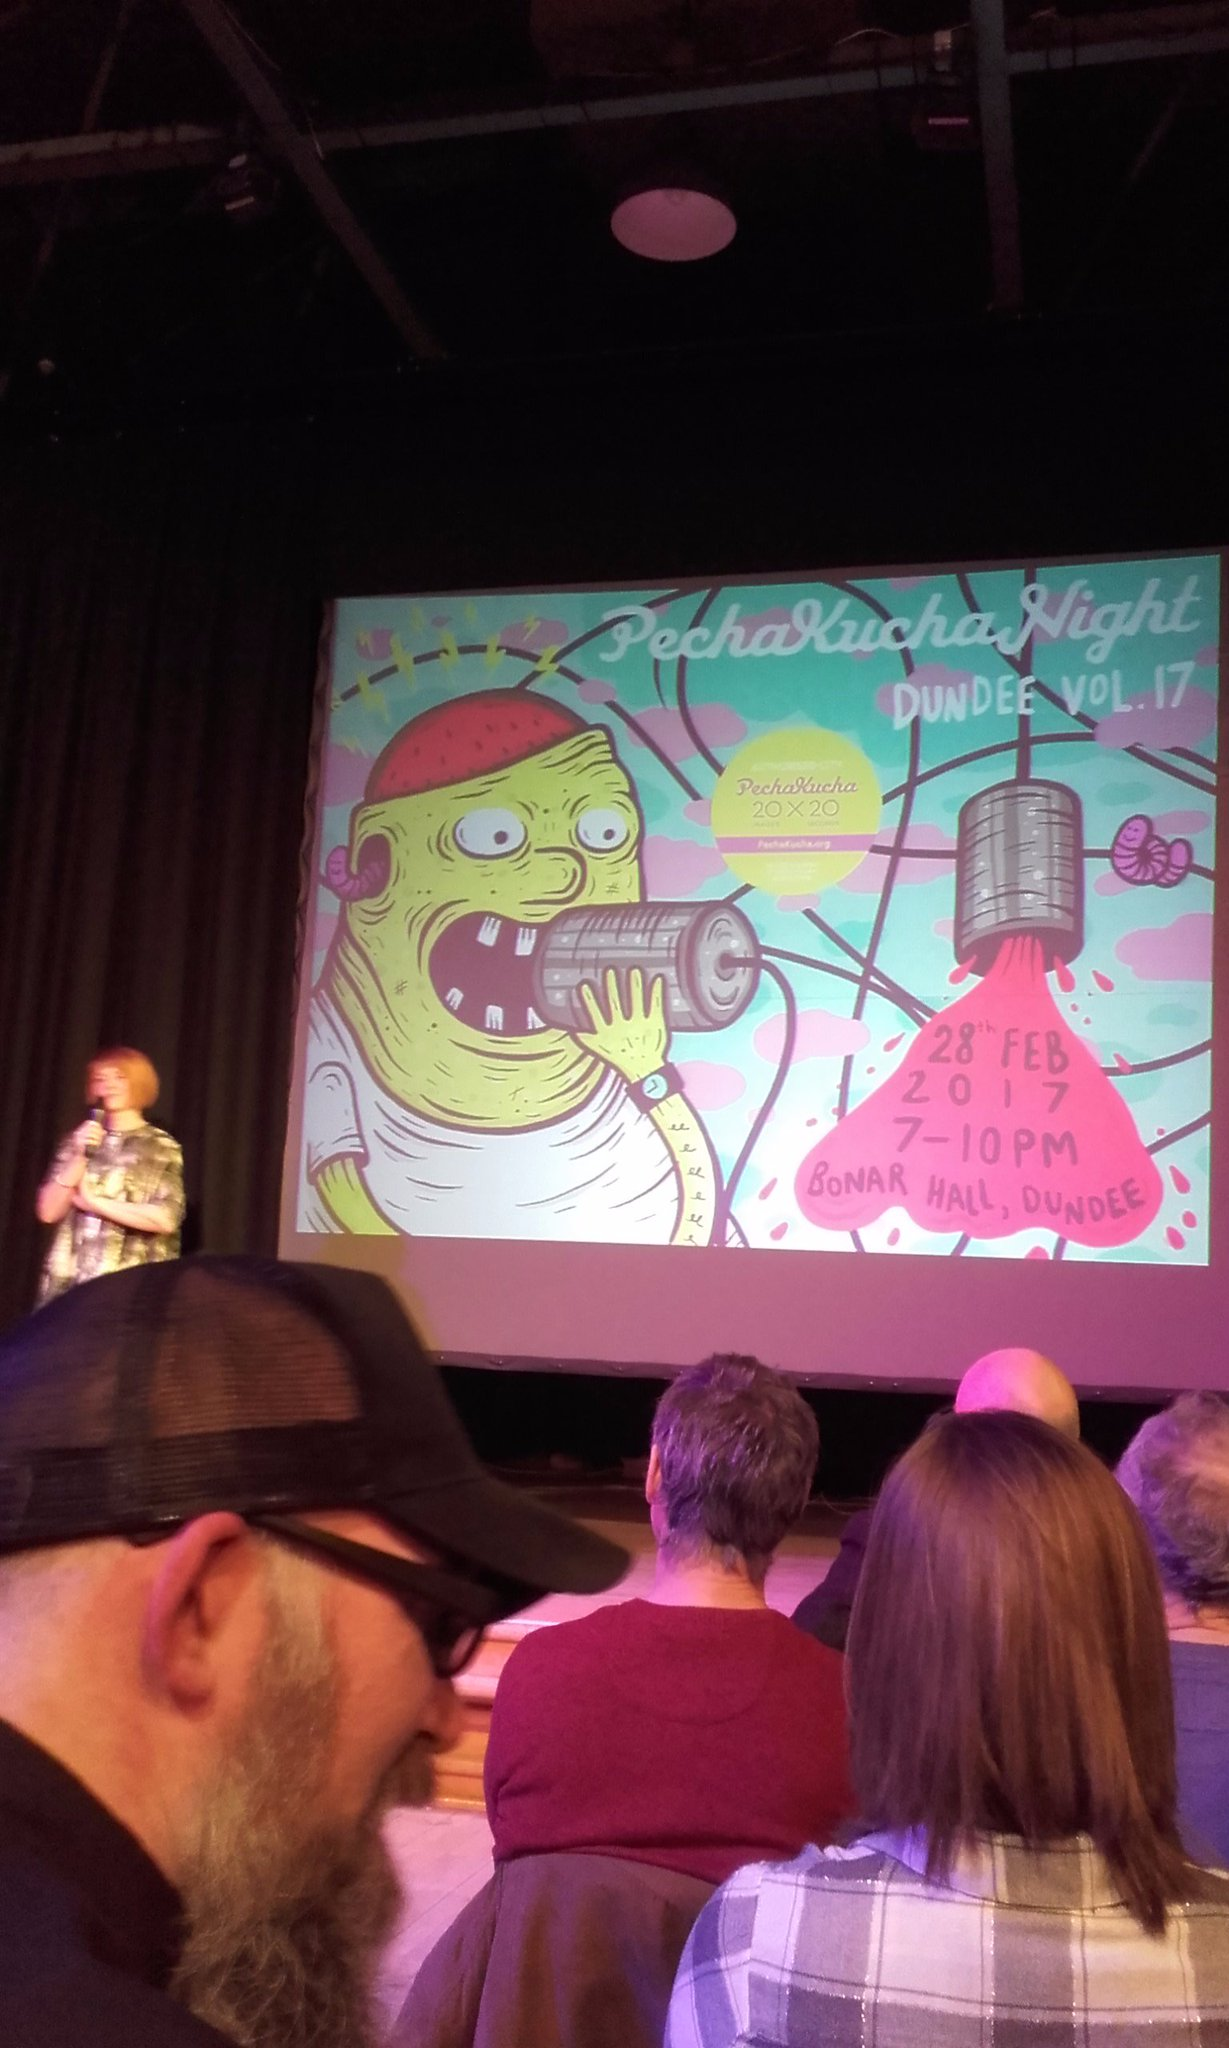 @Creative_Dundee #PKN_DND. Excellent variety of speakers last night. Love open mic as you find out even more what events are taking place. https://t.co/tHh4nAZ5xk